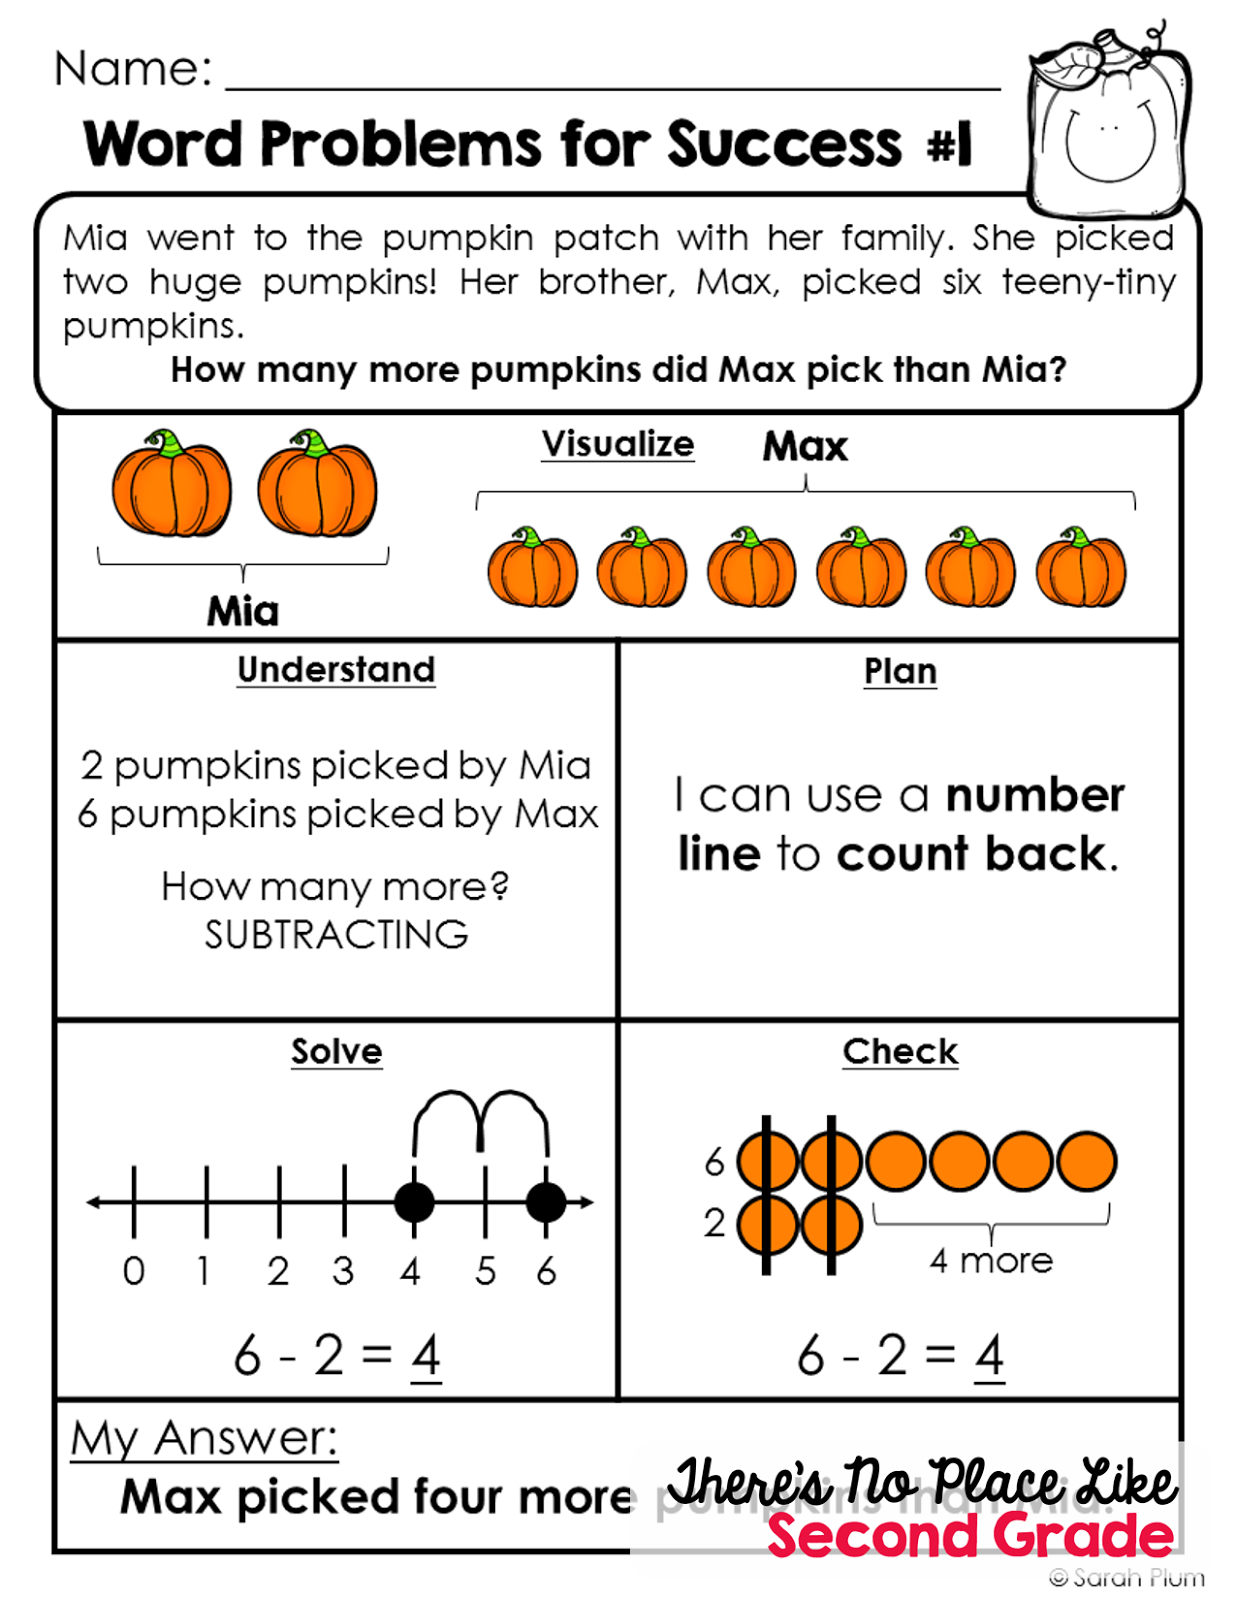 Worksheet Word Problems For Grade 2 worksheet word problems grade 2 mikyu free two step multiplication for 3rd viking 2nd 2